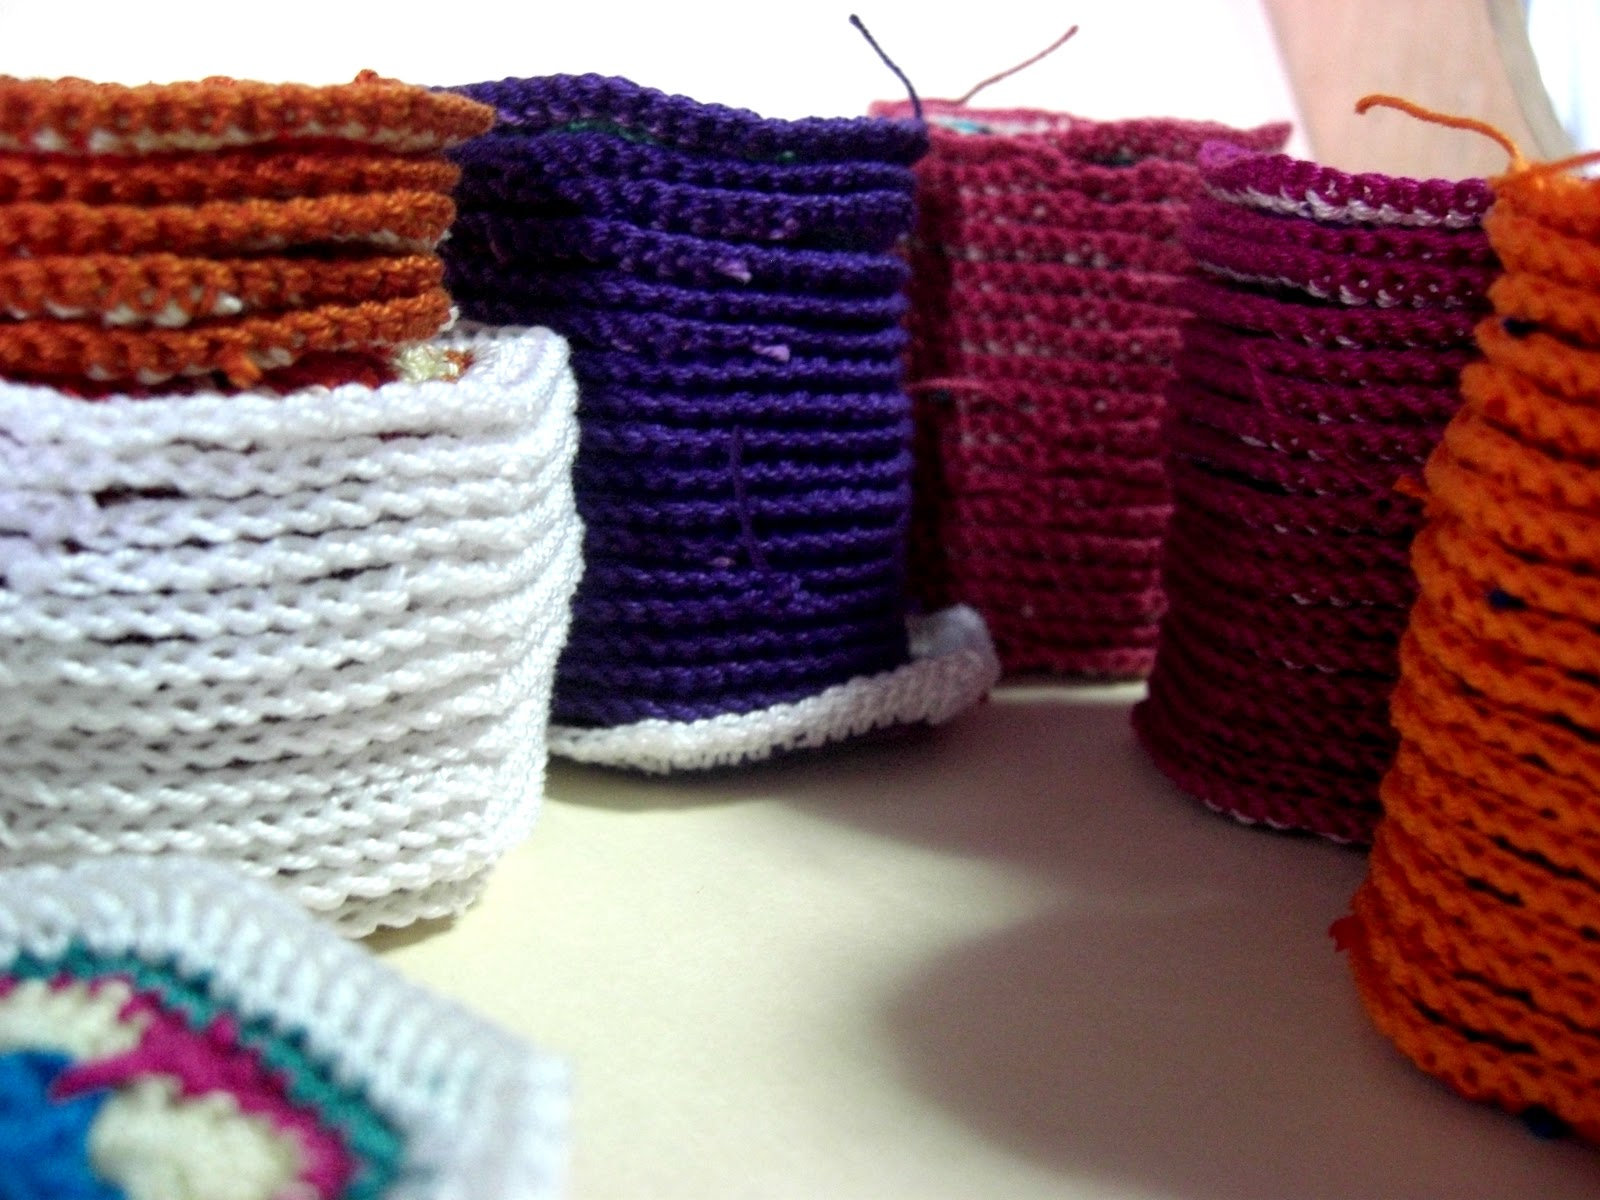 Knitting Meaning In Tagalog : Gantsilyo guru: september 2012